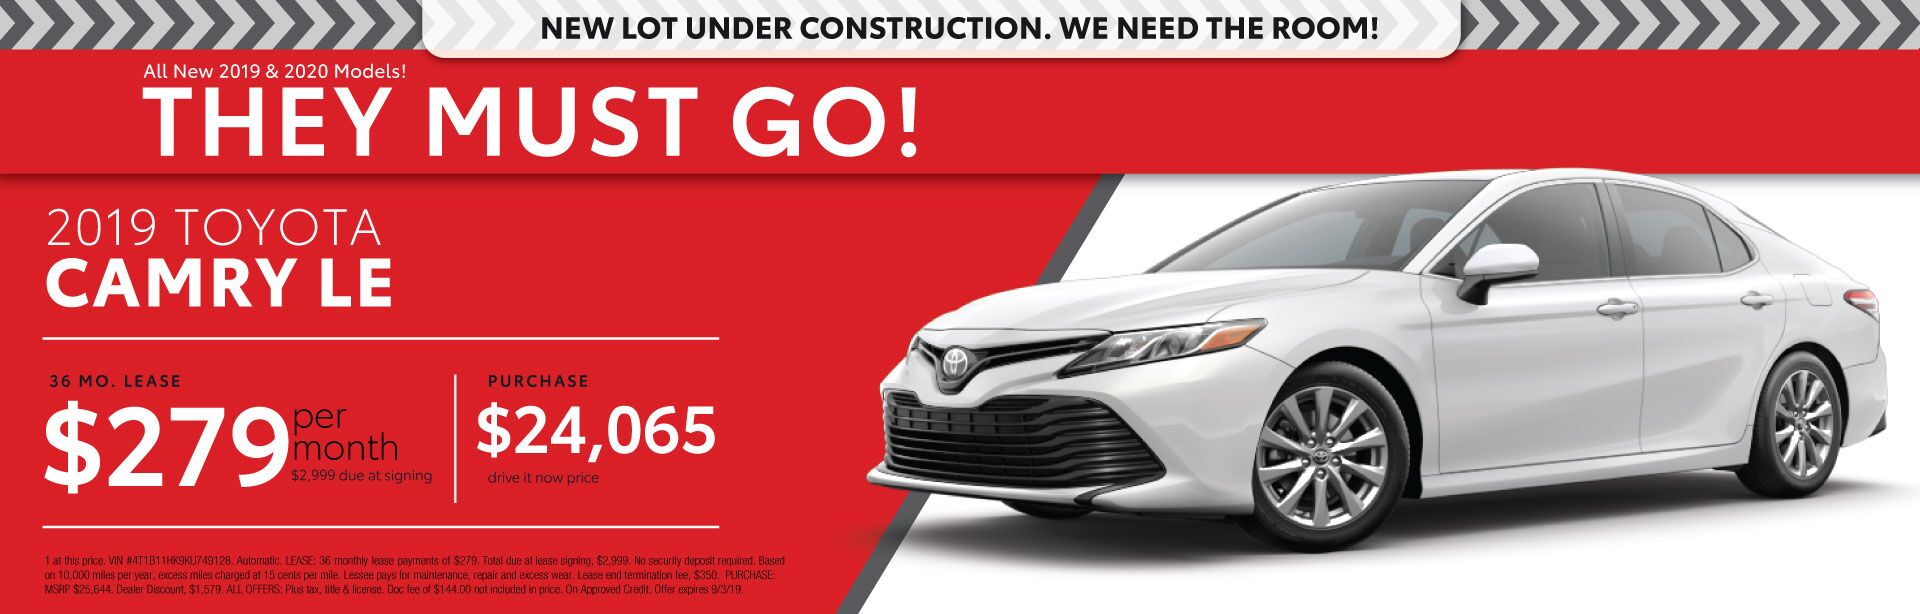 2019 Toyota Camry LE - Lease for $279 per month for 36 months with $2,999 due at signing - Purchase price $24,065